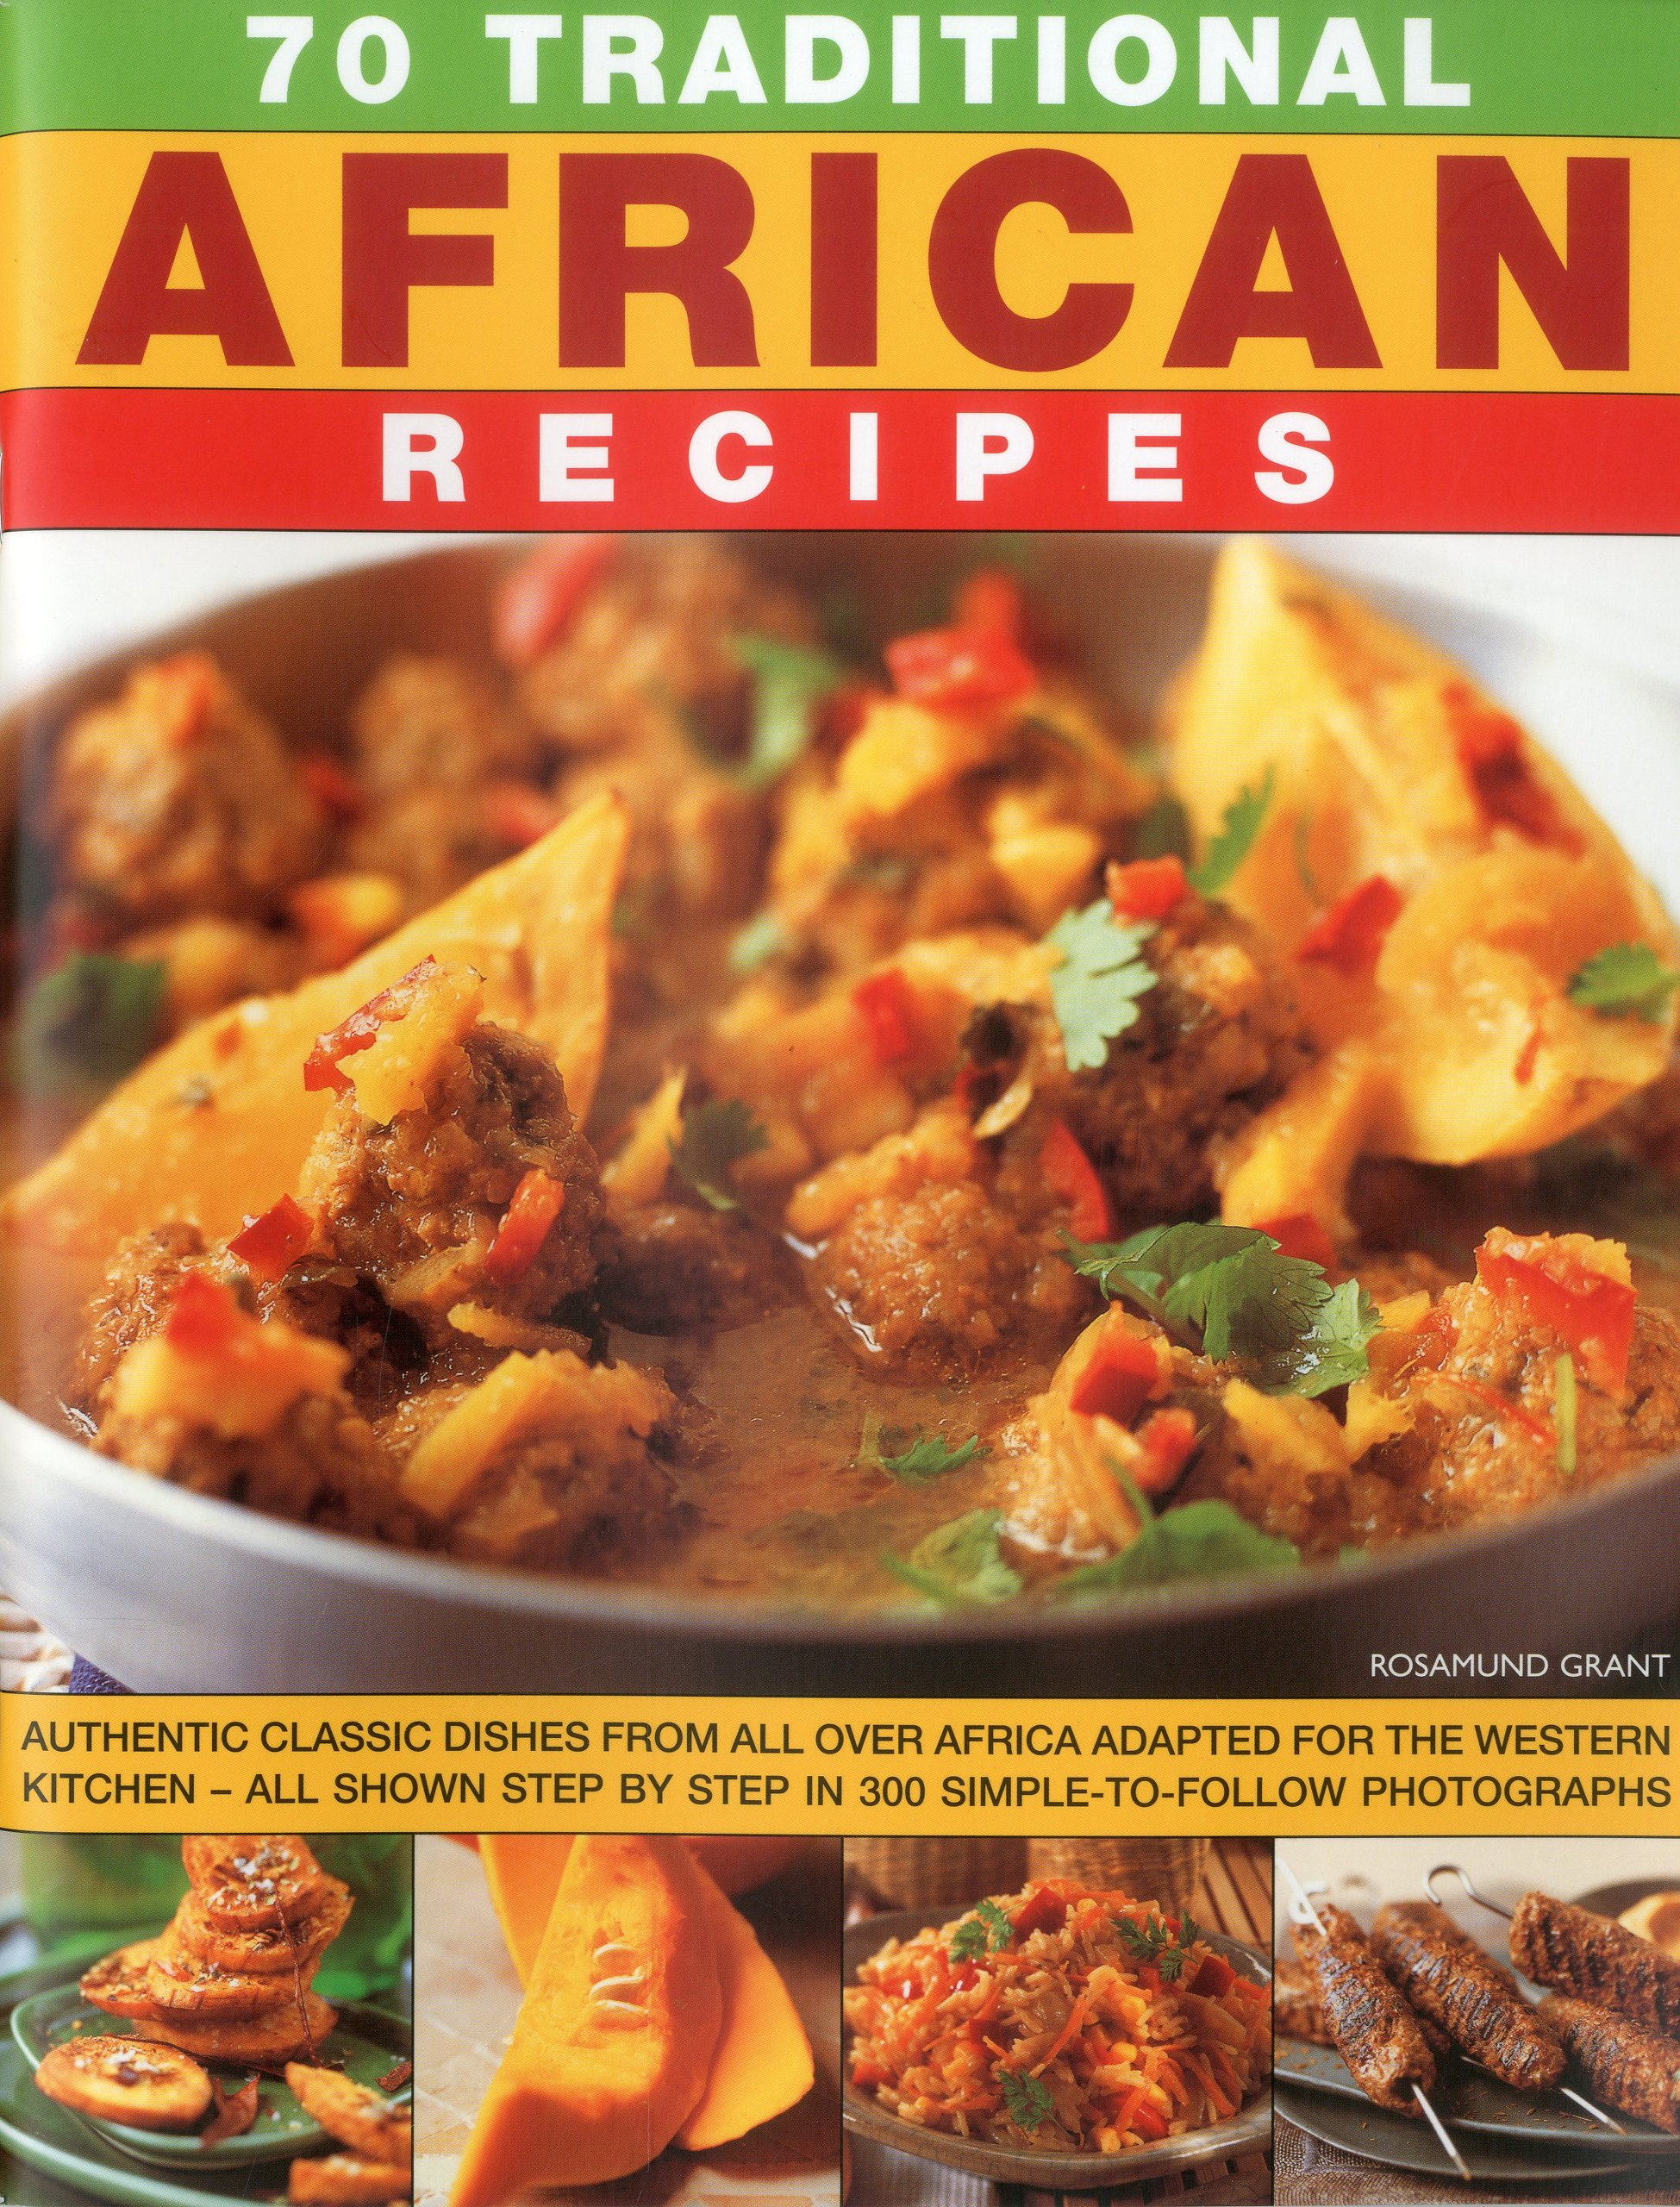 70 traditional african recipes authentic classic dishes from all 70 traditional african recipes authentic classic dishes from all over africa adapted for the western kitchen all shown step by step in 300 forumfinder Image collections